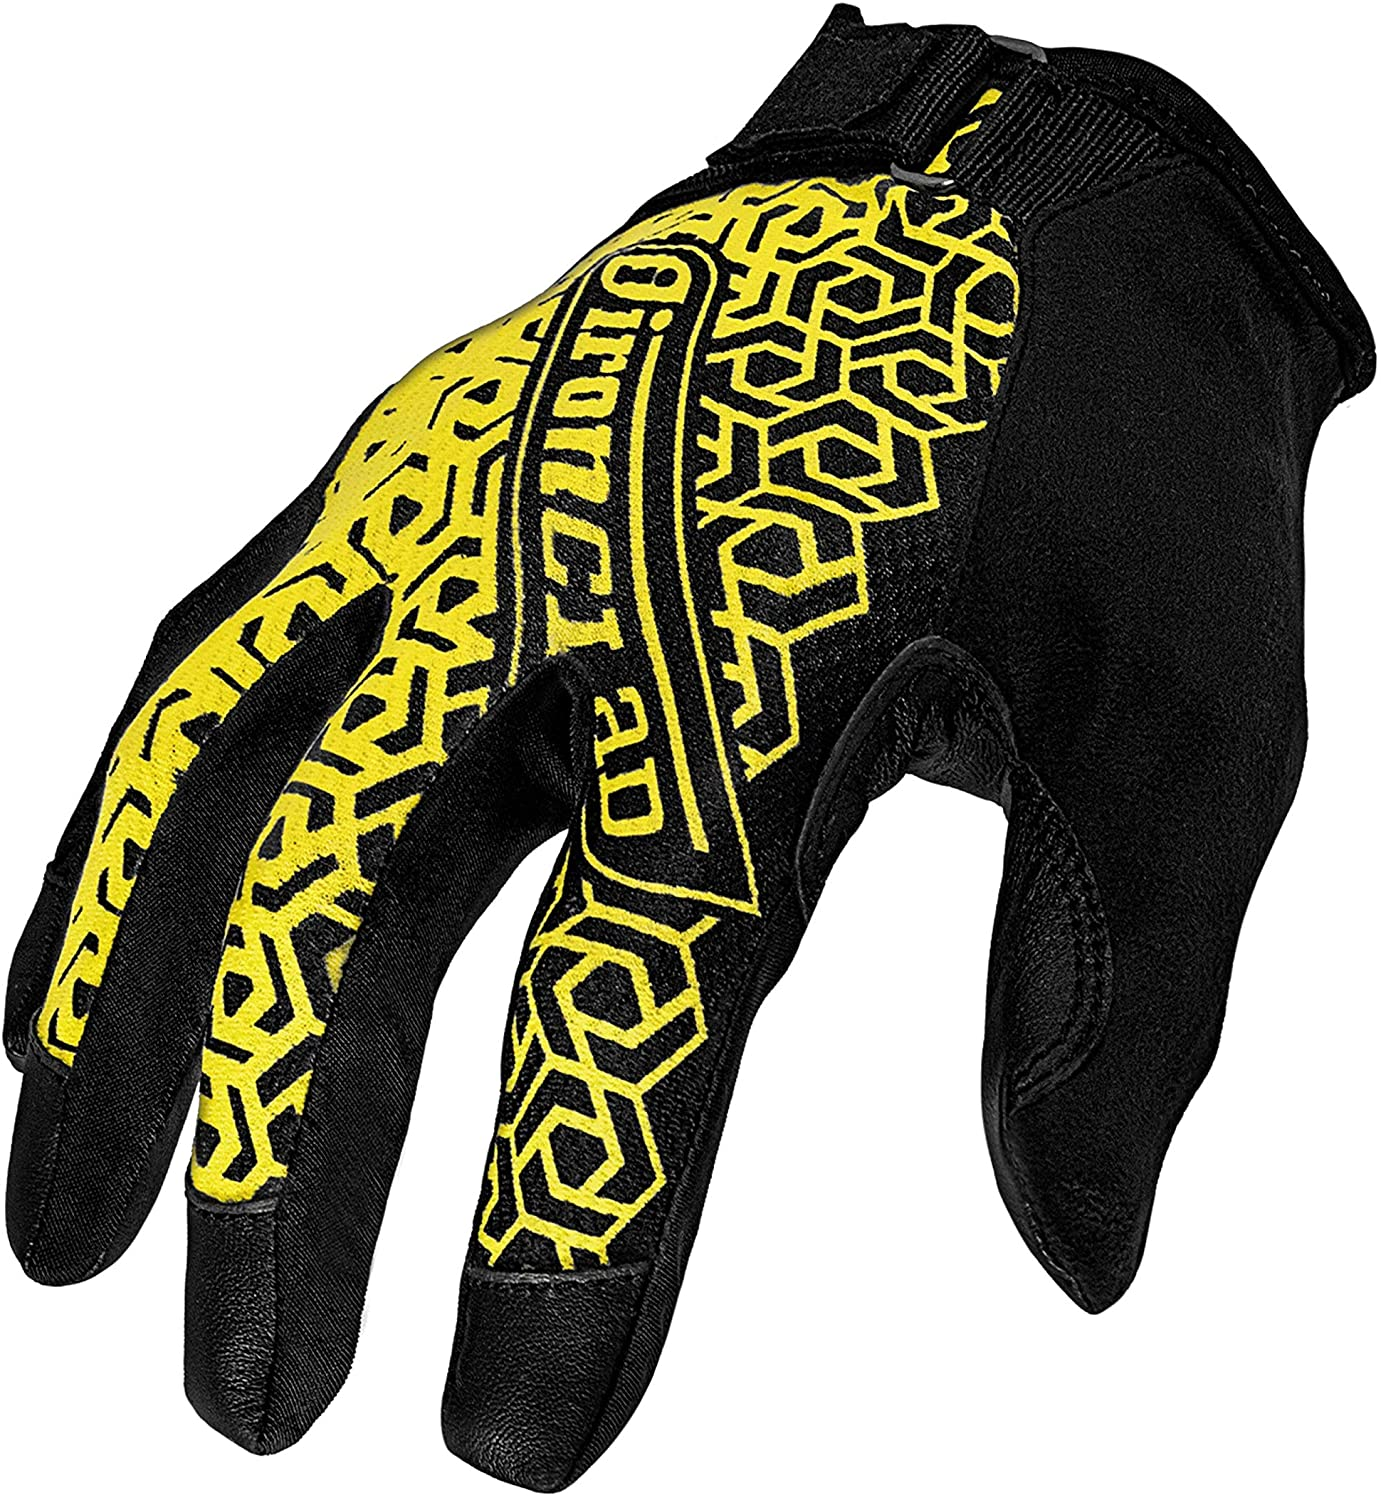 Ironclad Console Gaming Gloves, Precision Fit, Performance Grip, Touchscreen Compatible, Machine Washable, (1 Pair), Size XL (ES-CNSL-05-XL)